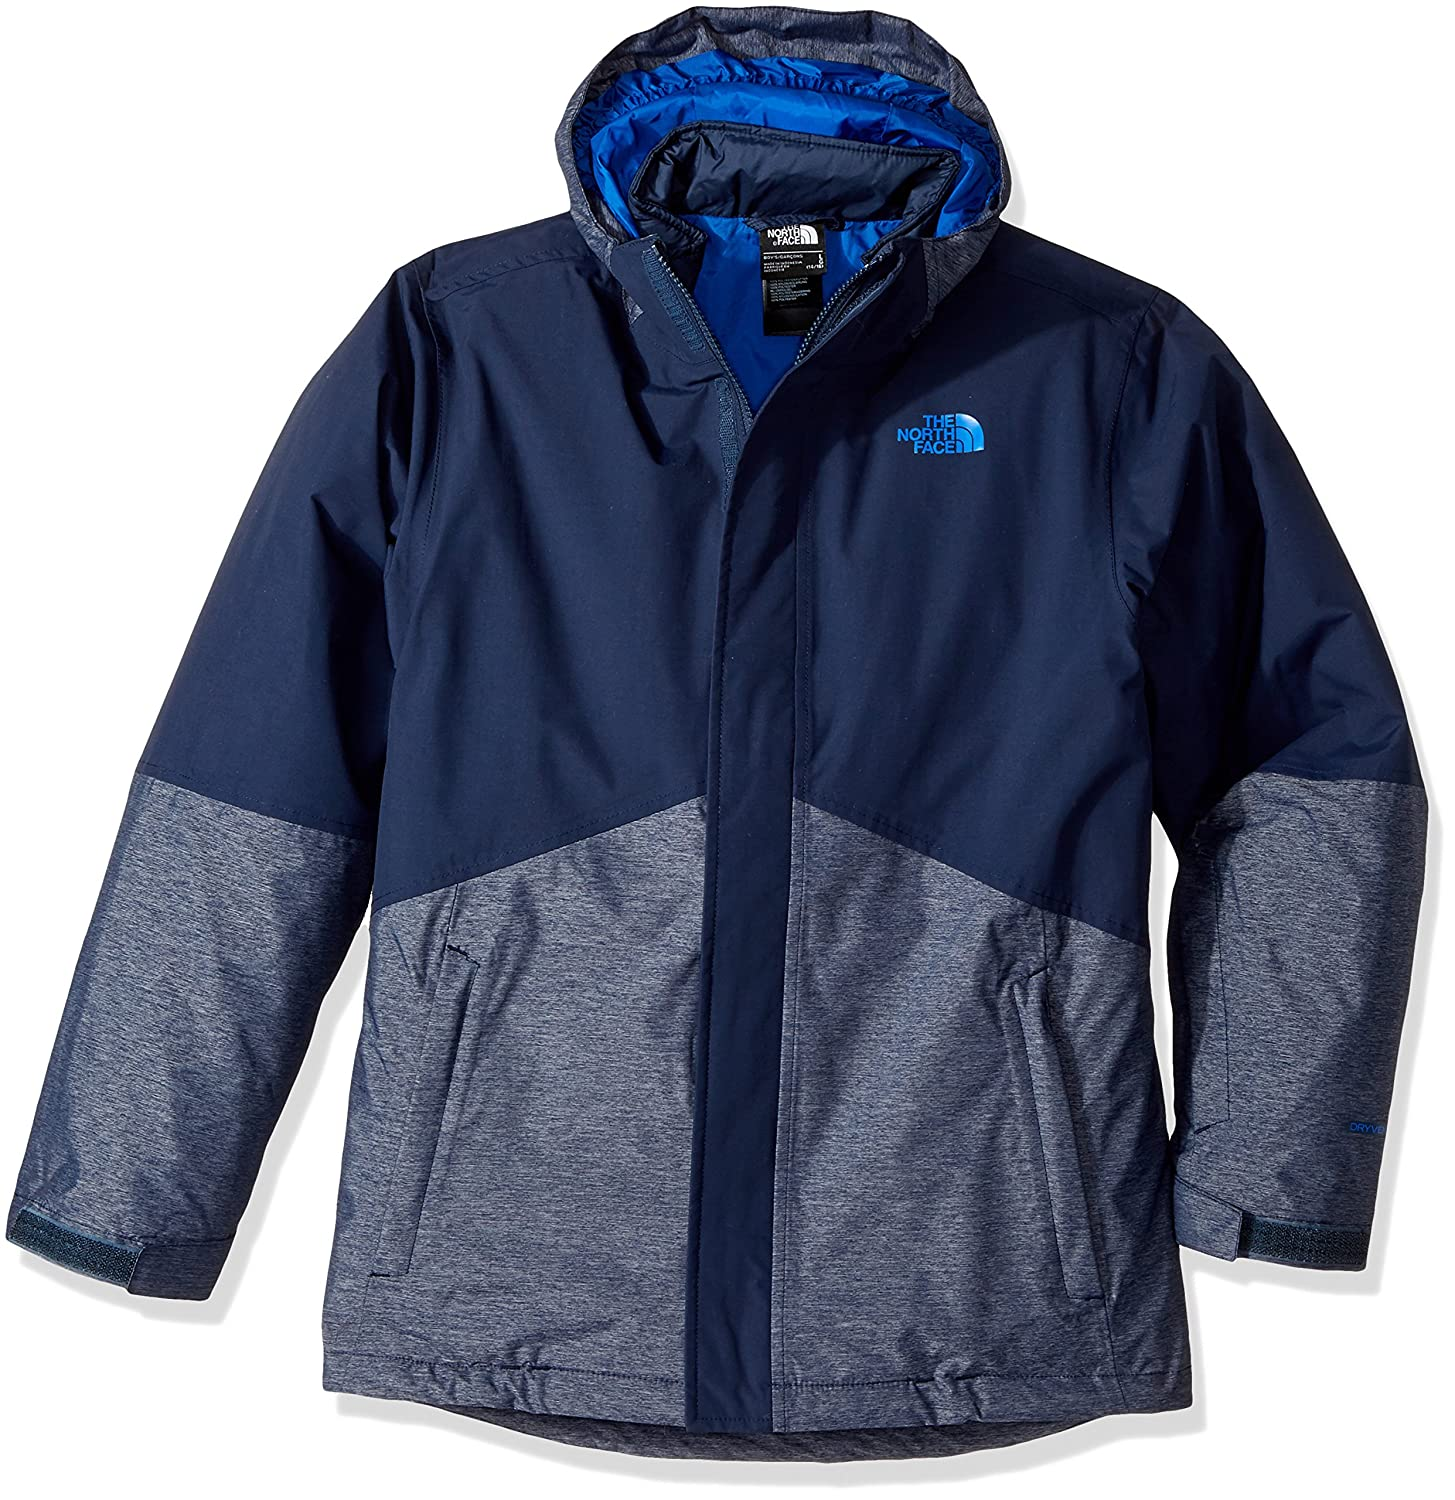 b79075abf The North Face Big Boys' Boundary Triclimate Jacket (Sizes 7 - 20 ...